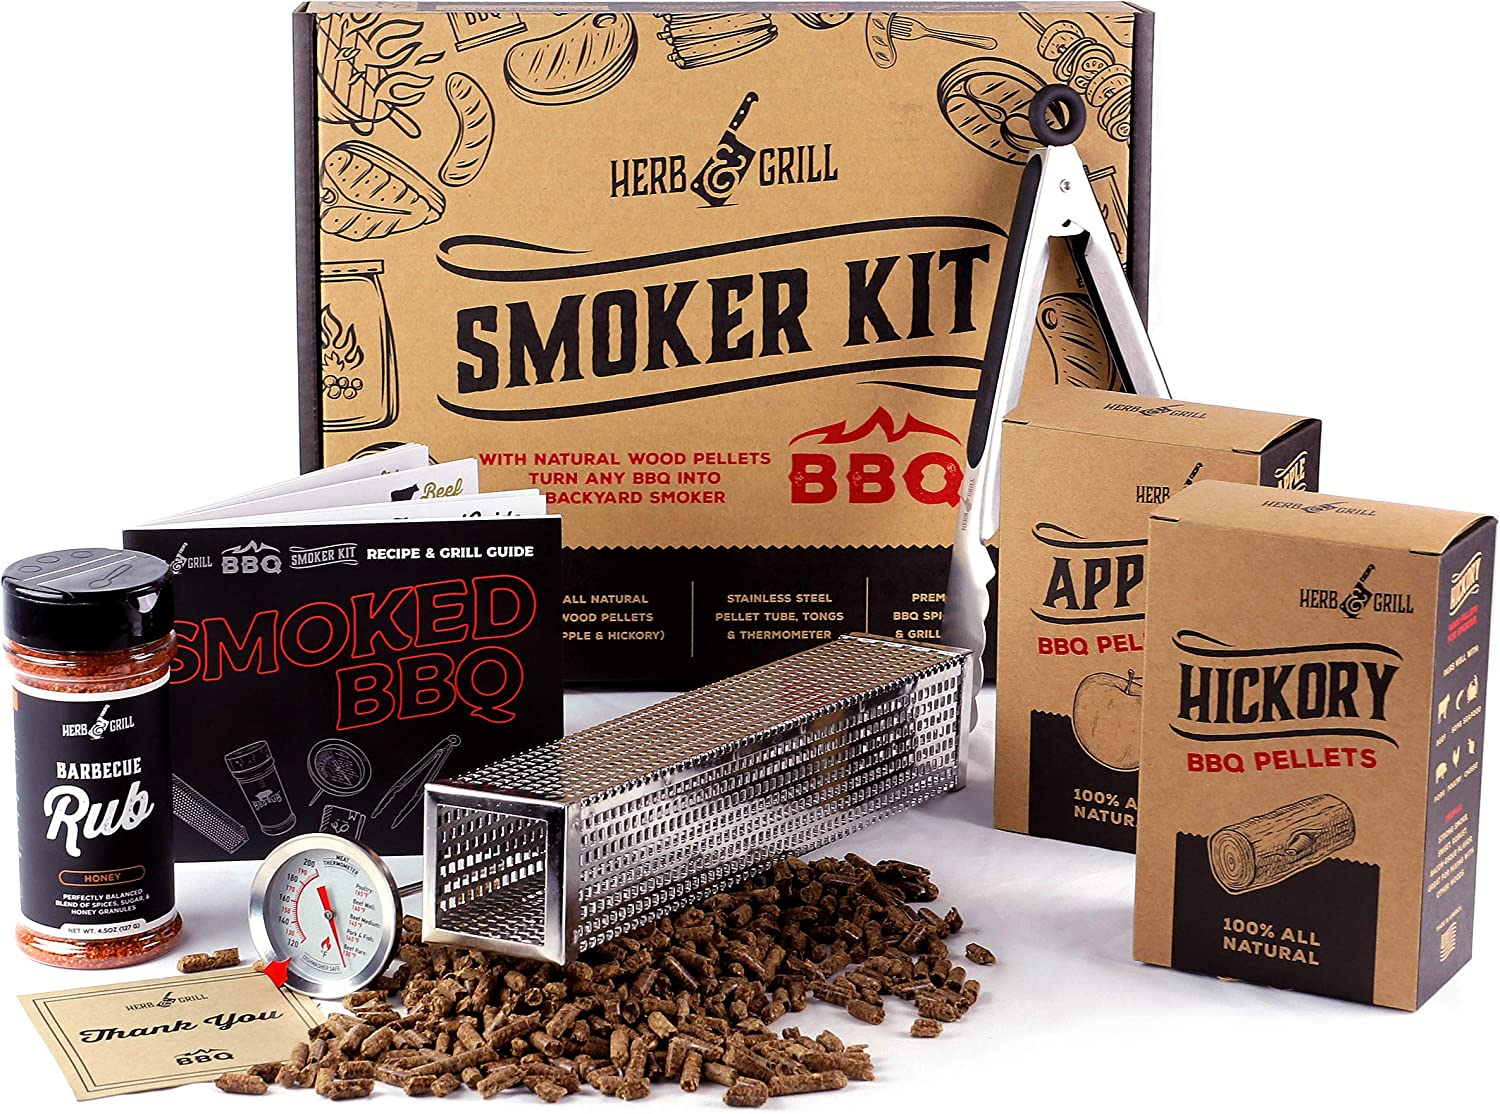 Herb & Grill 7 Piece BBQ Cooking Gift Set for Dad | Smoking Wood Pellet Smoker Tube with Honey BBQ Rub | Fun & Easy